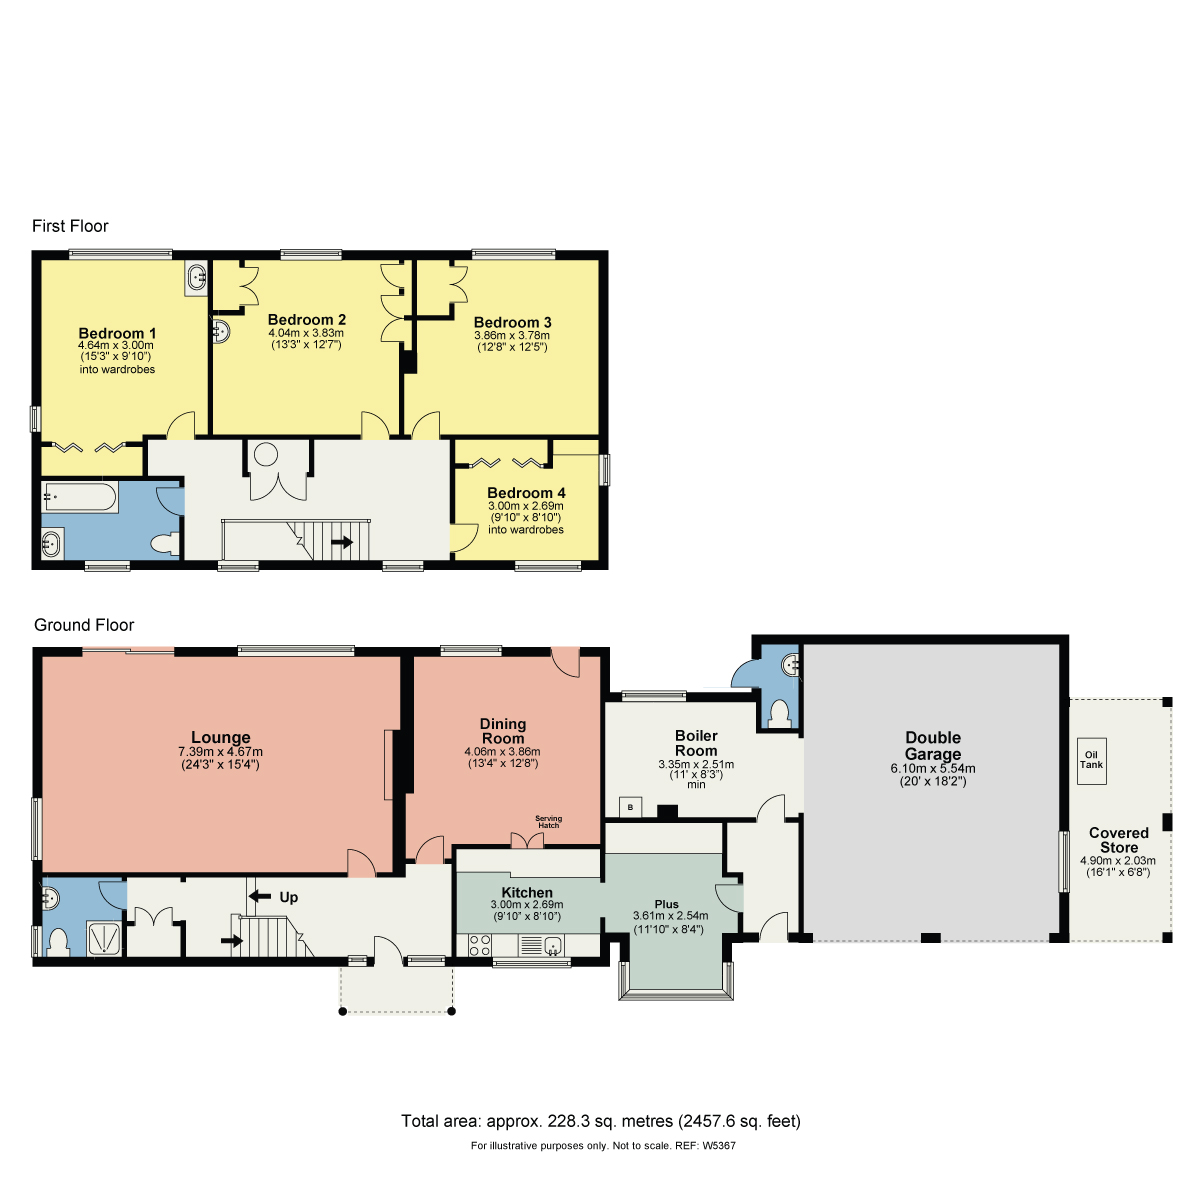 Floorplan Willows, Storrs Park, Bowness On Windermere, Cumbria, LA23 3LT